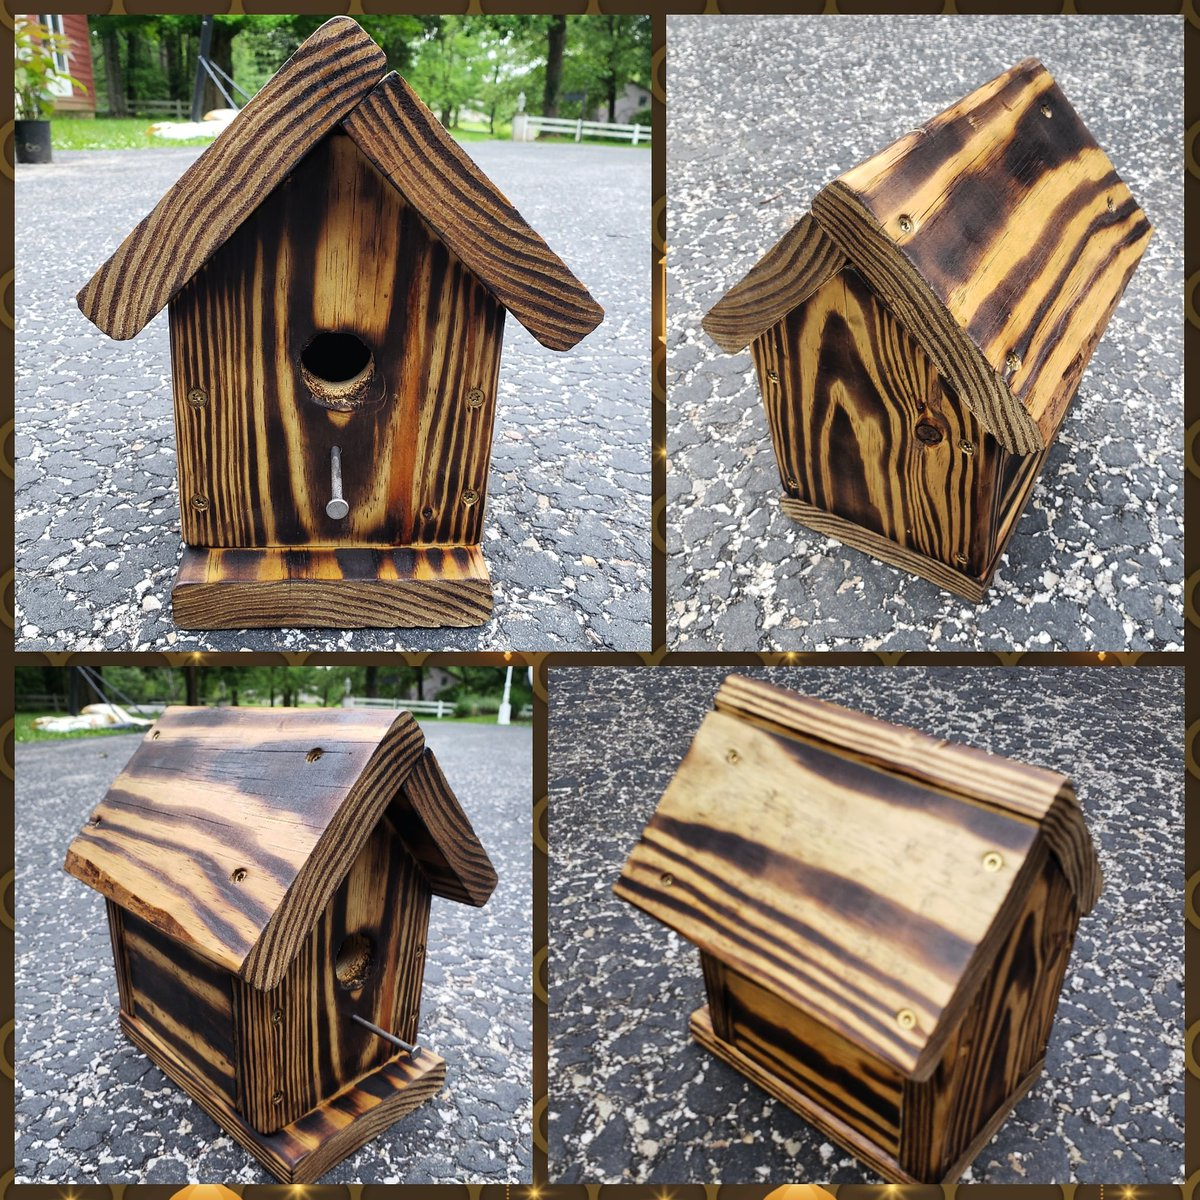 Excited to share the latest addition to my #etsy shop: Rustic Burnt Birdhouses #birdhouse #rustic #garden #birds #gift #homemade